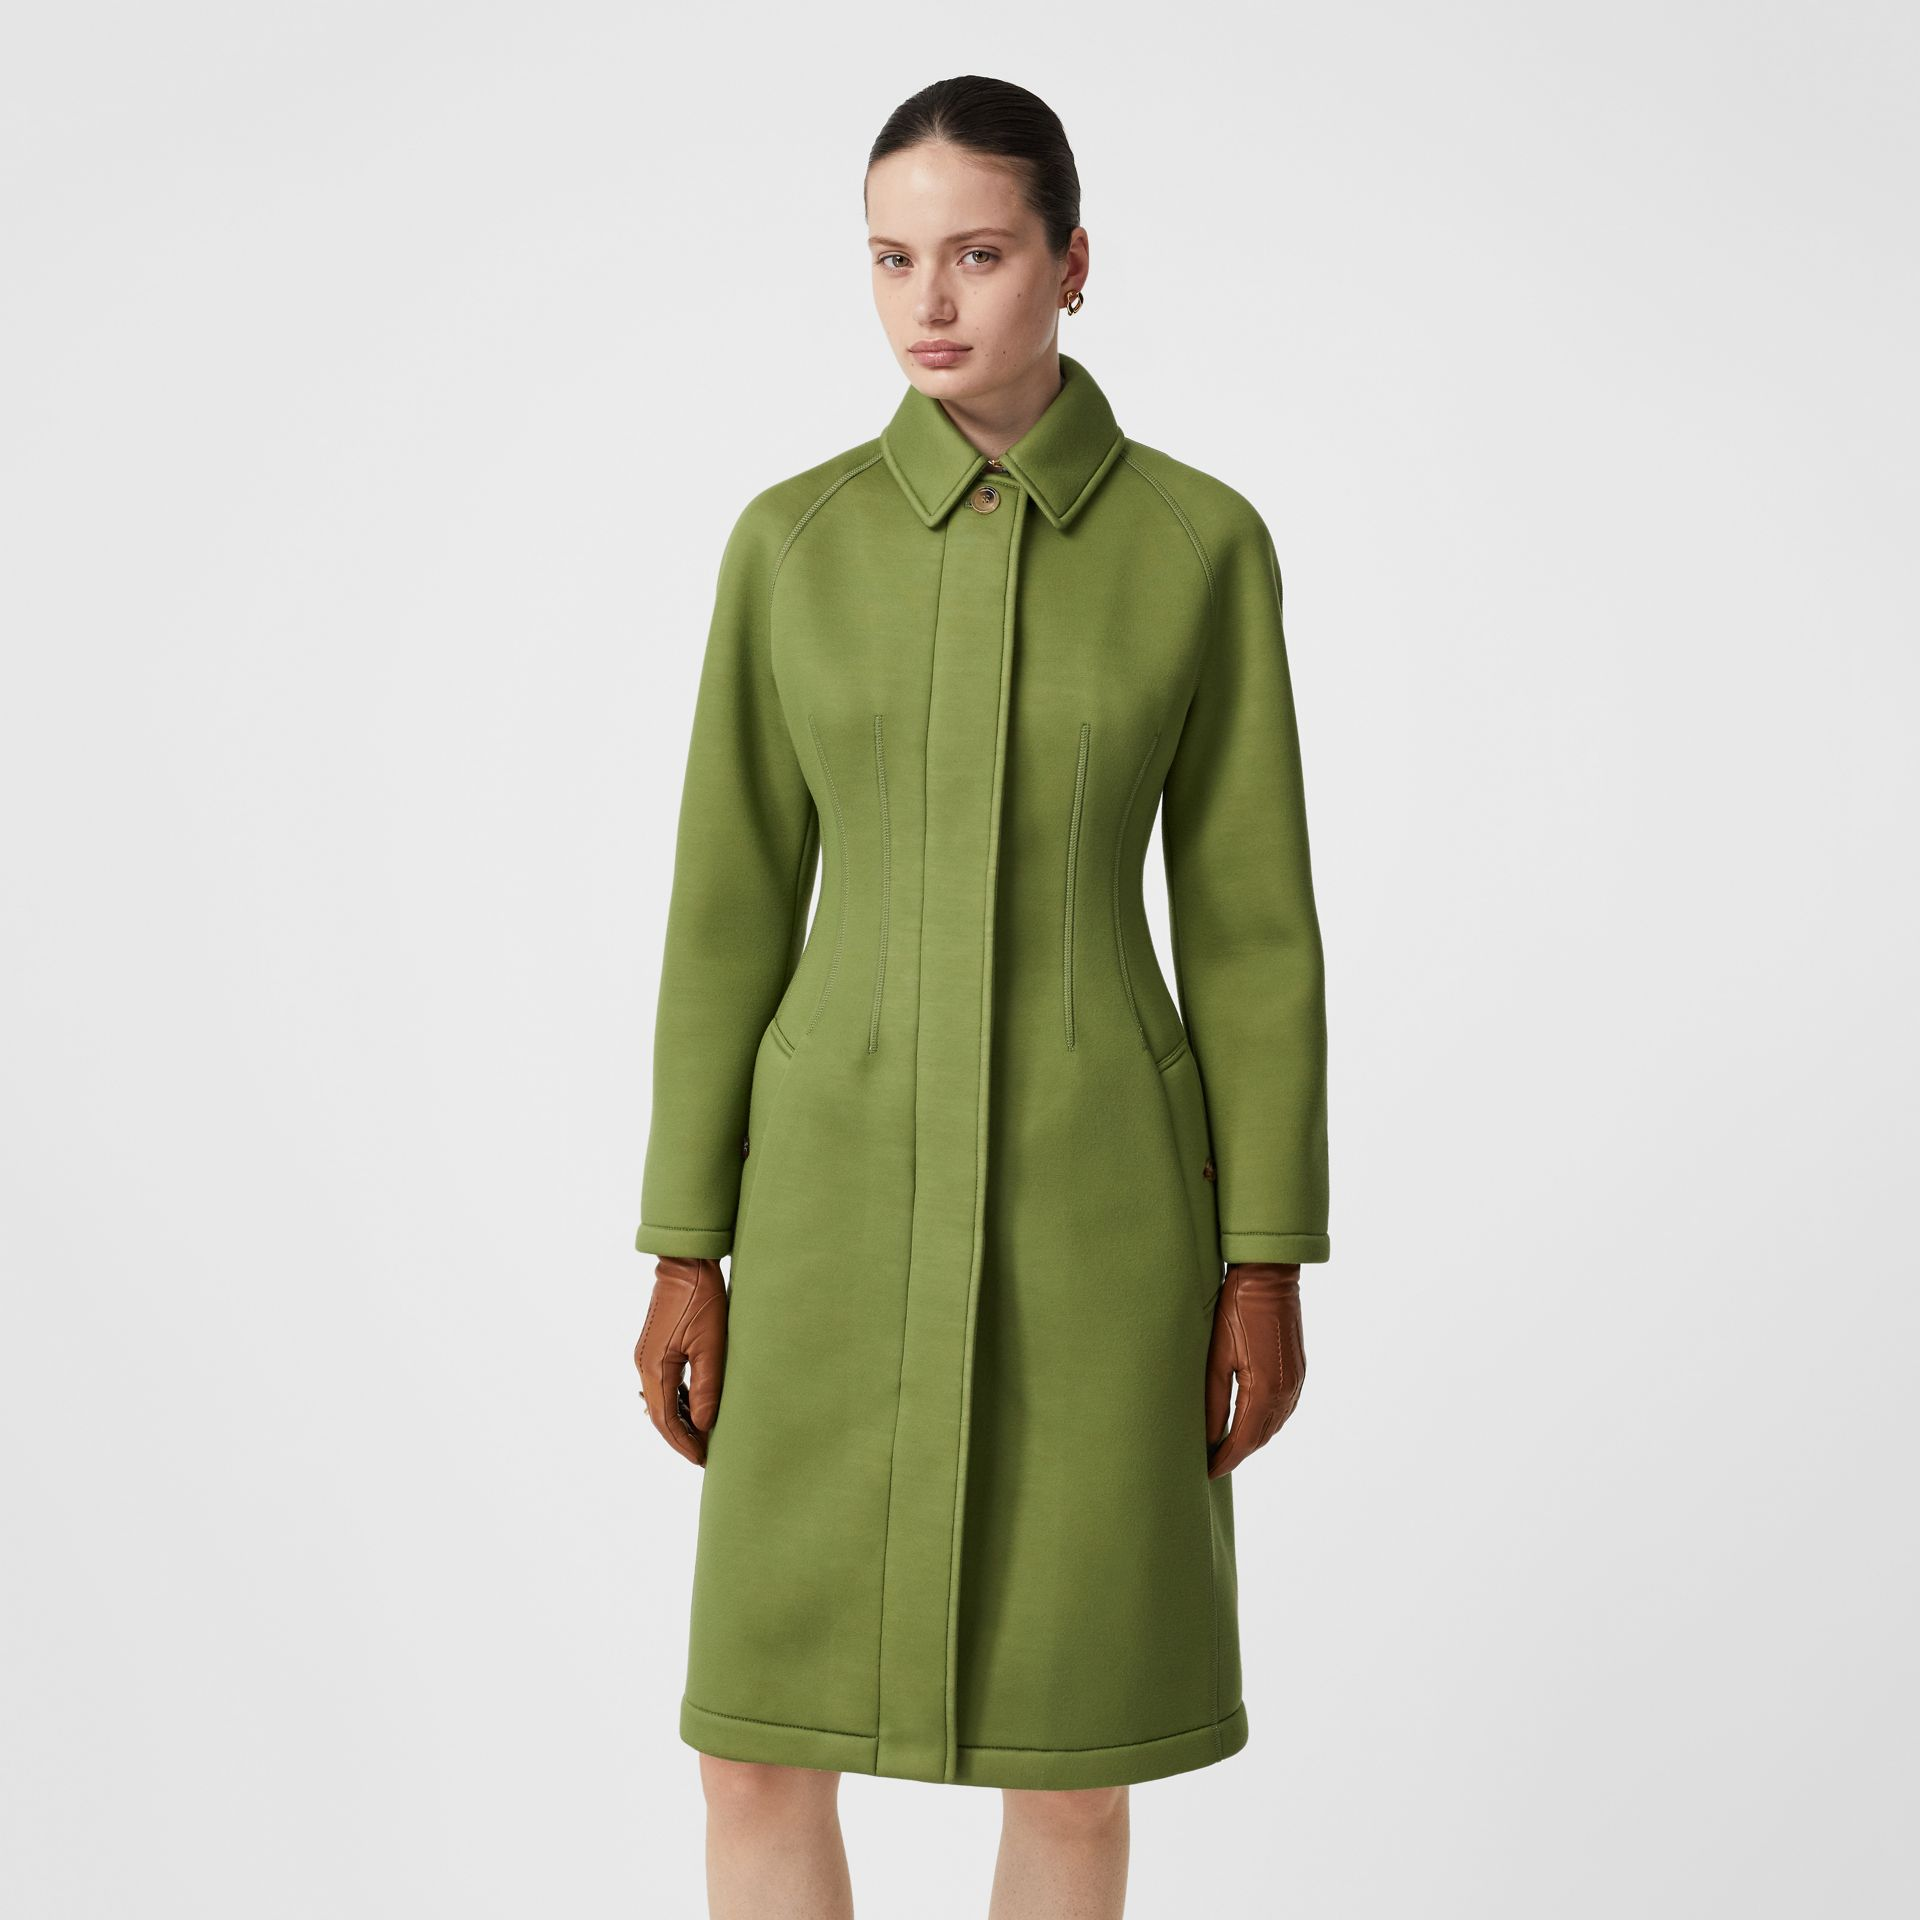 Bonded Neoprene Tailored Car Coat in Cedar Green - Women | Burberry - gallery image 5